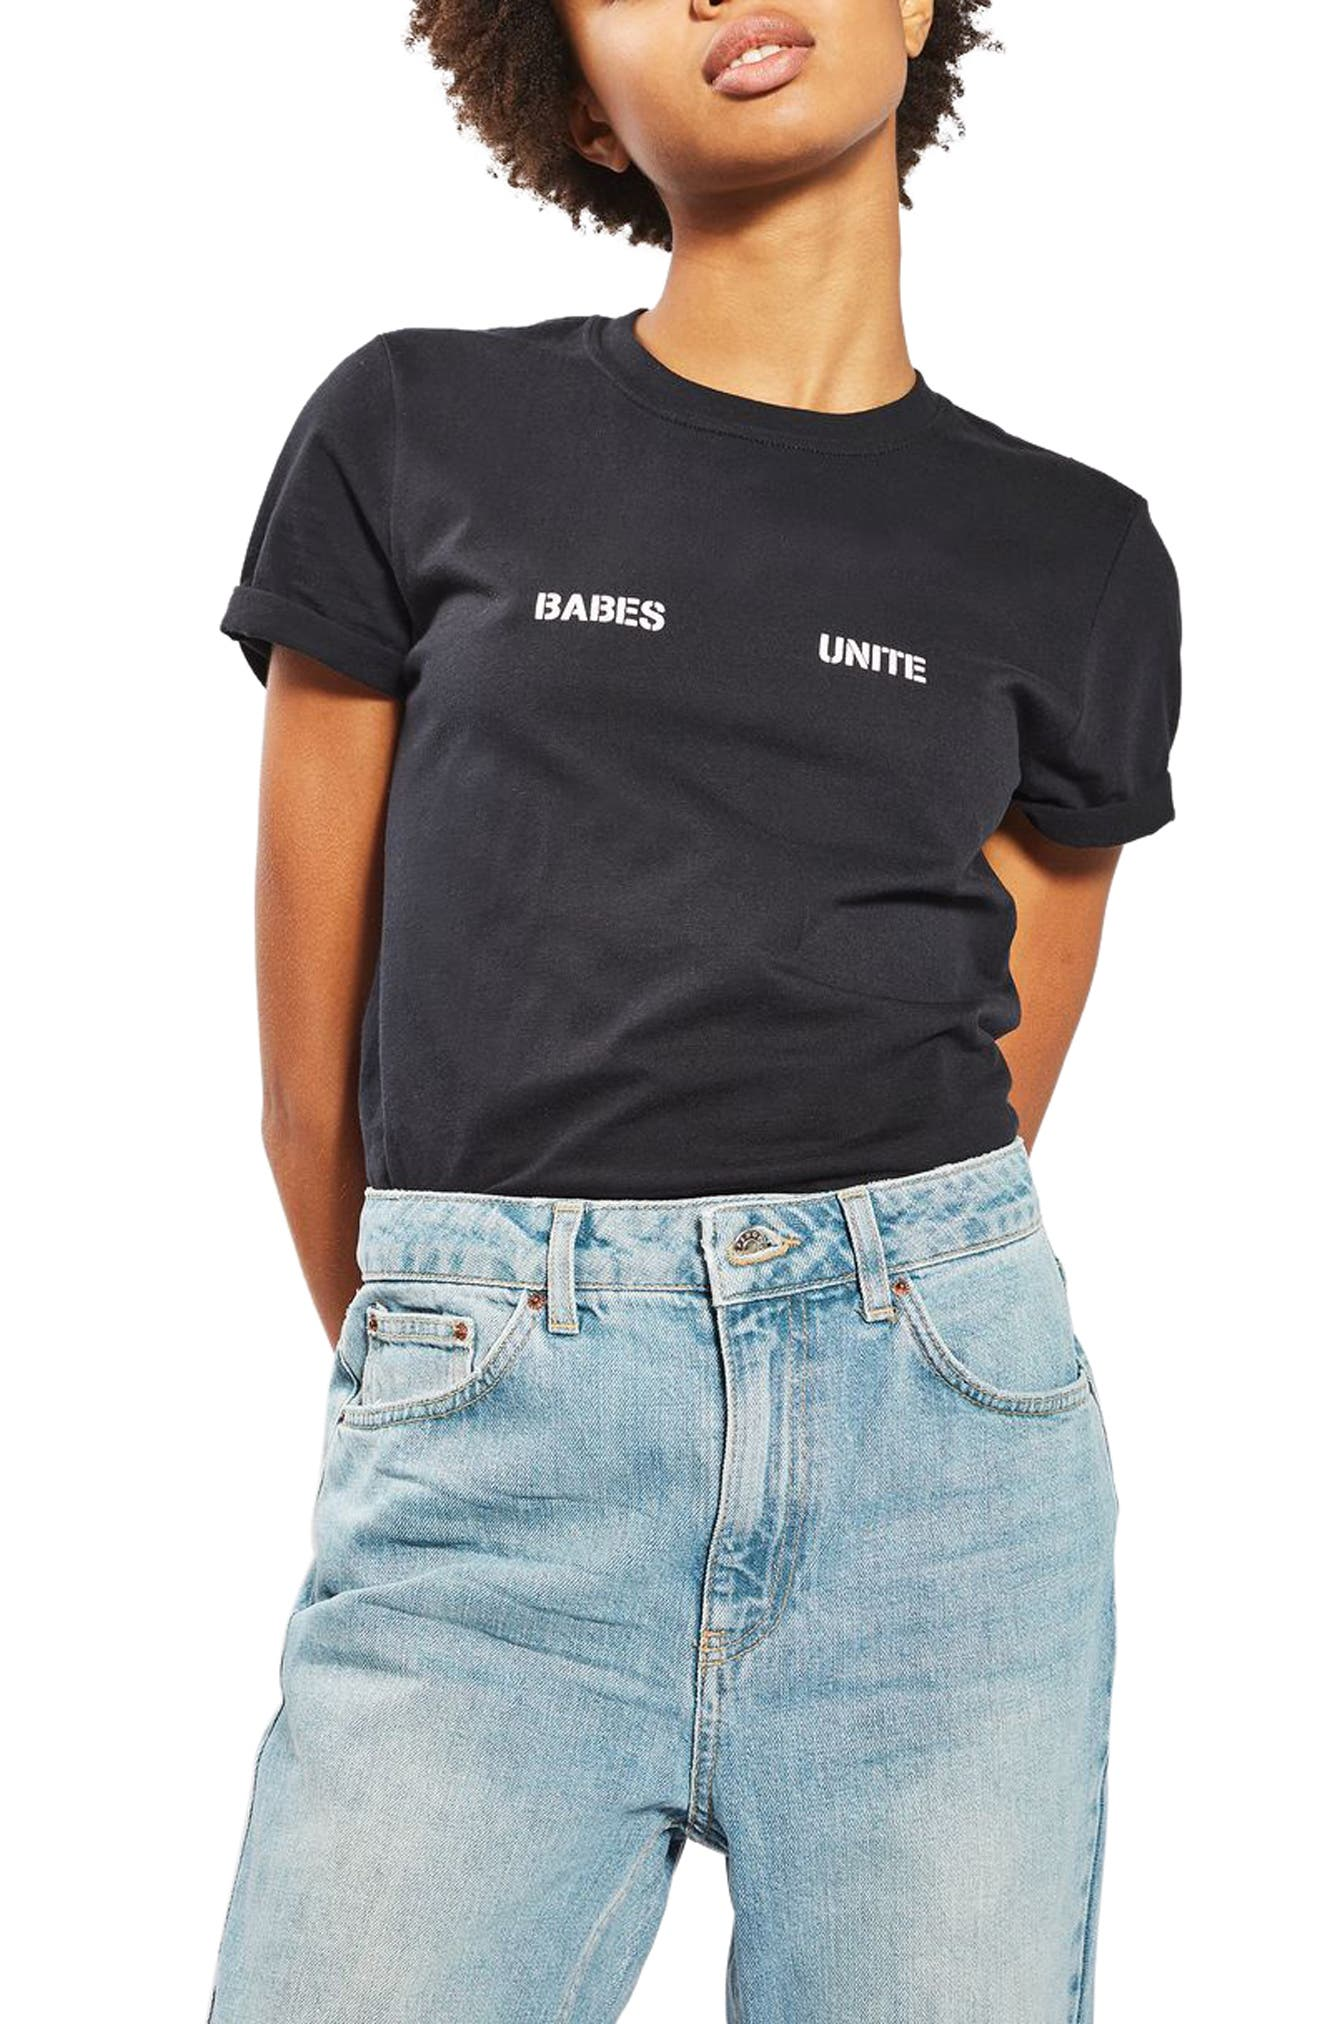 Alternate Image 1 Selected - Topshop Babes Unite Tee